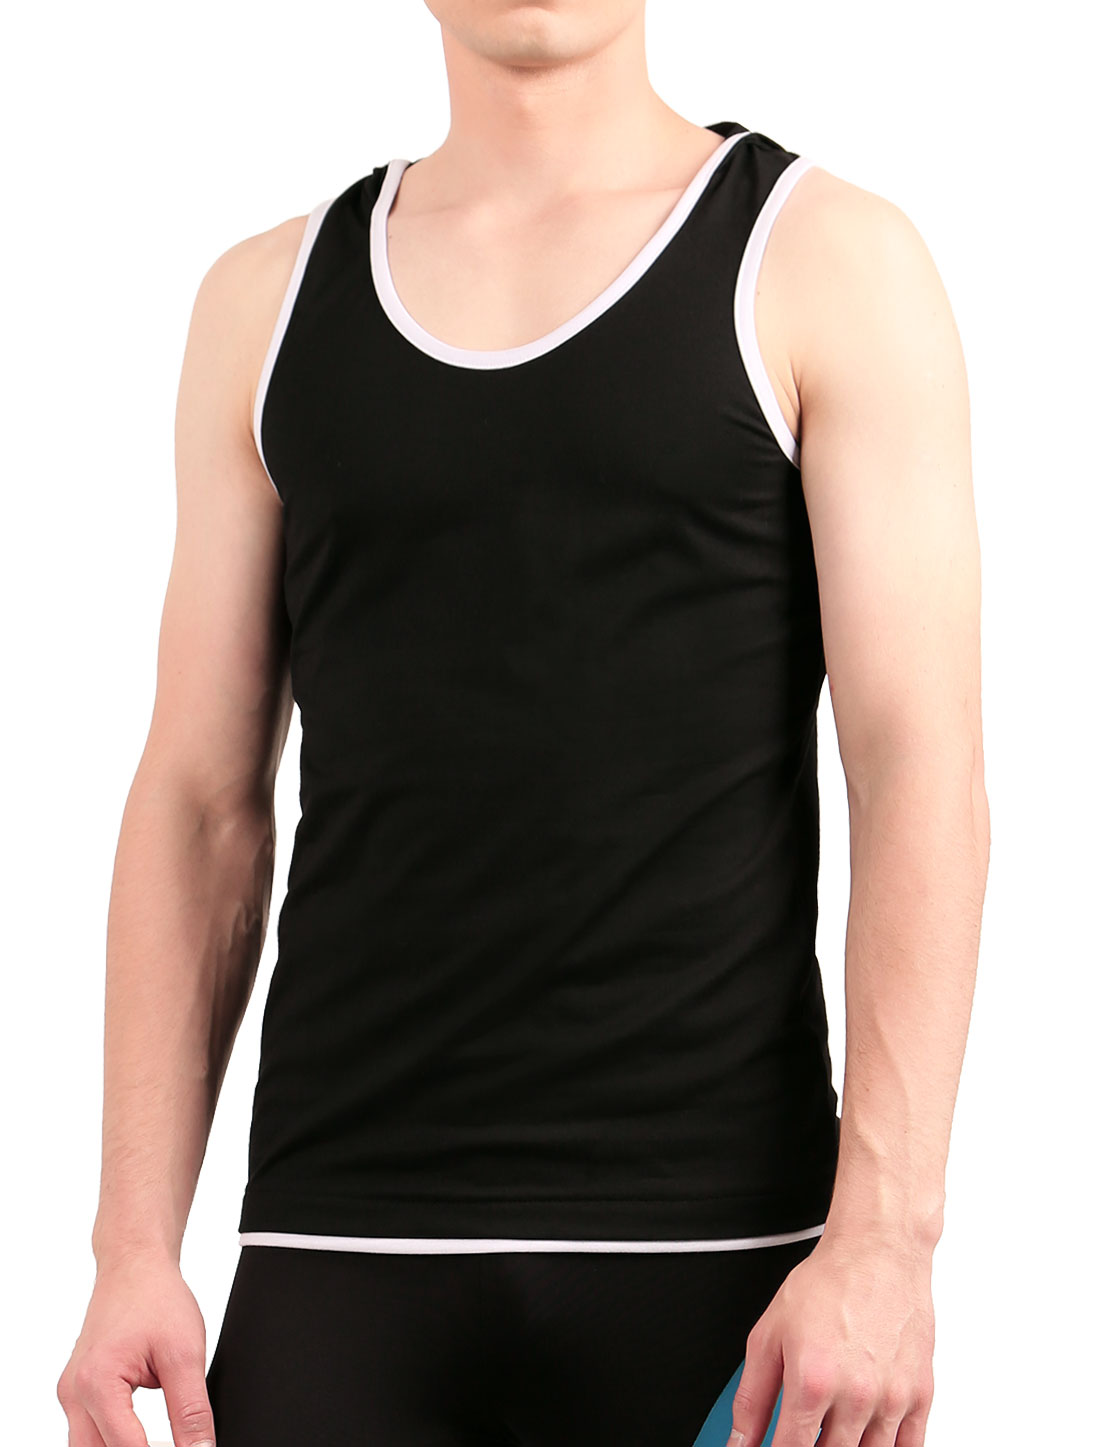 Mens Fashion Black Sleeveless Piped Detail Stretch Hoody Tank Top L